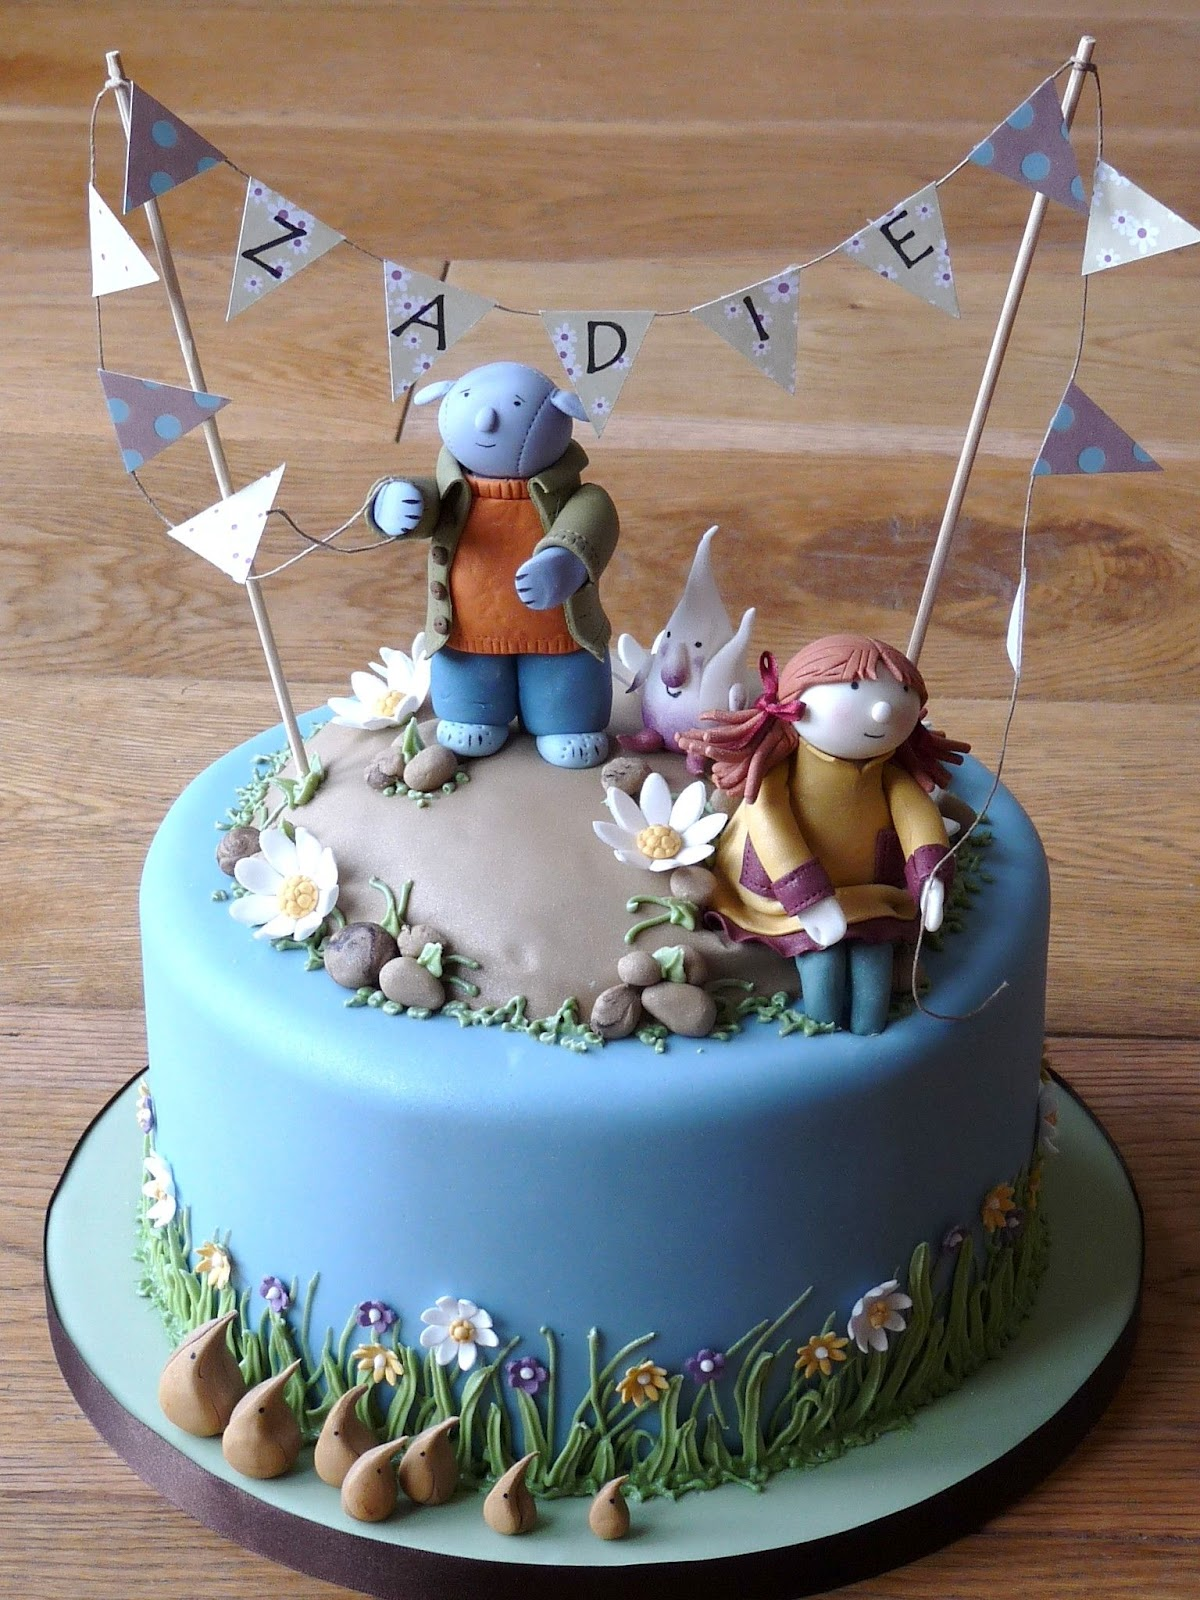 Rachelle S The Story Of Abney And Teal In Cake